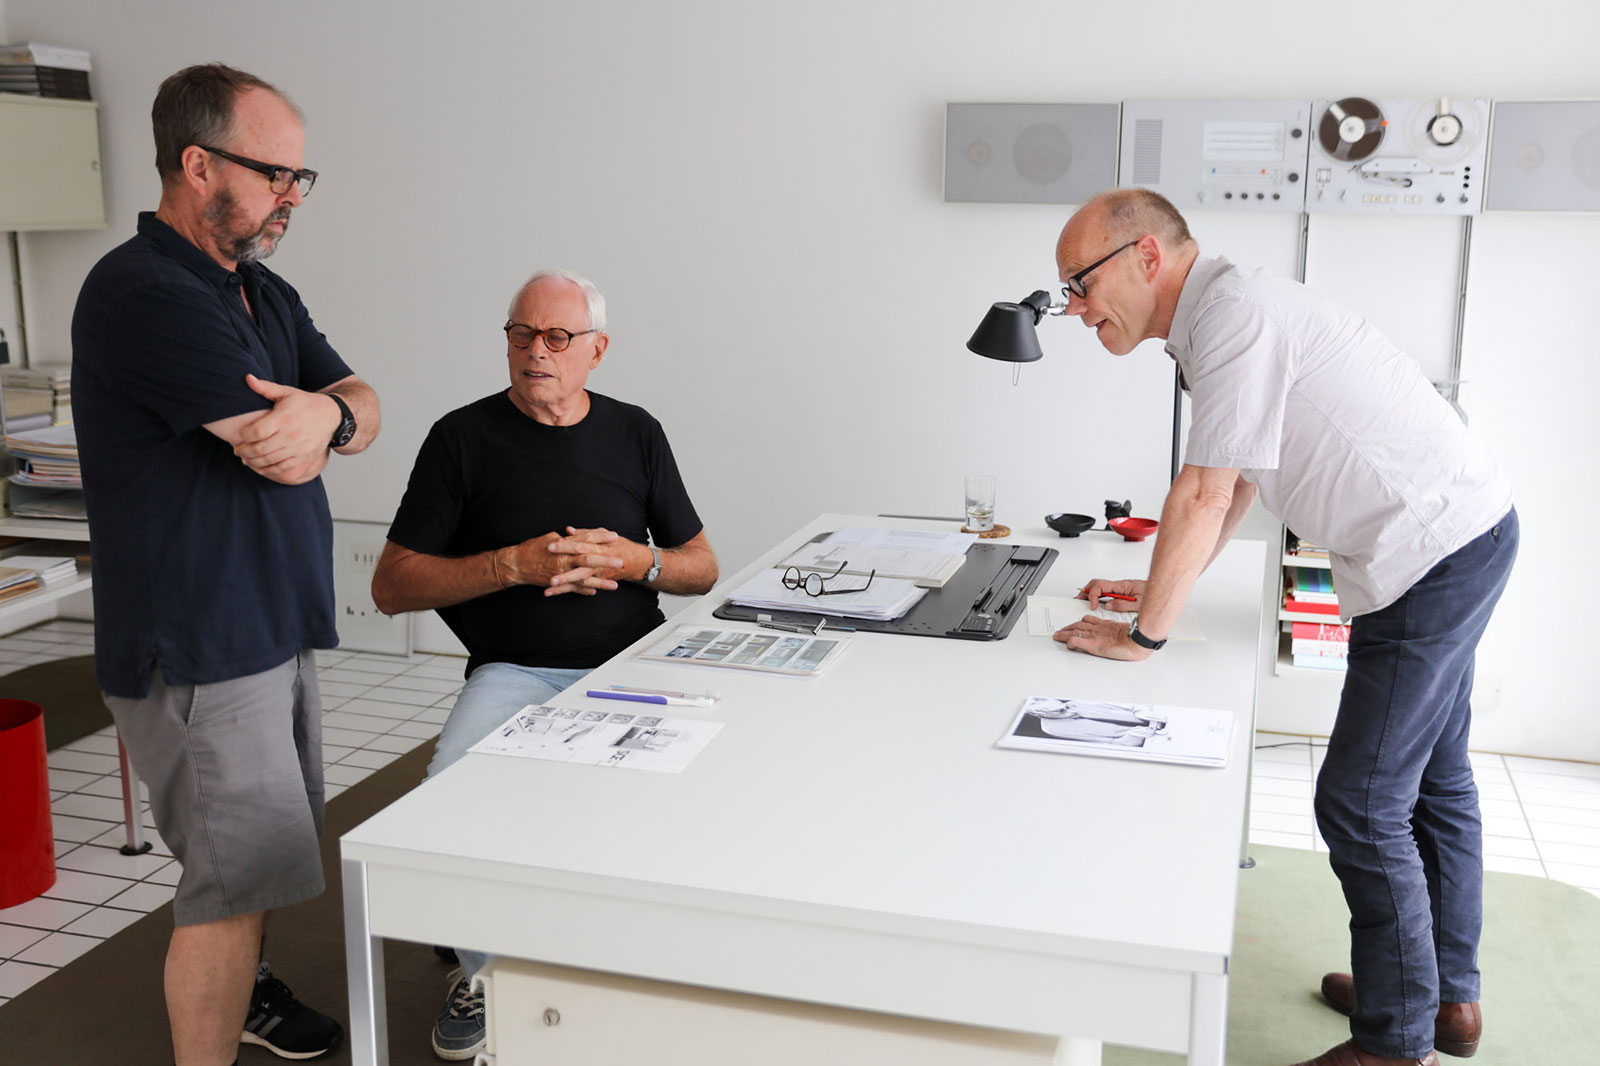 How Dieter Rams' New Advice Applies to Voice